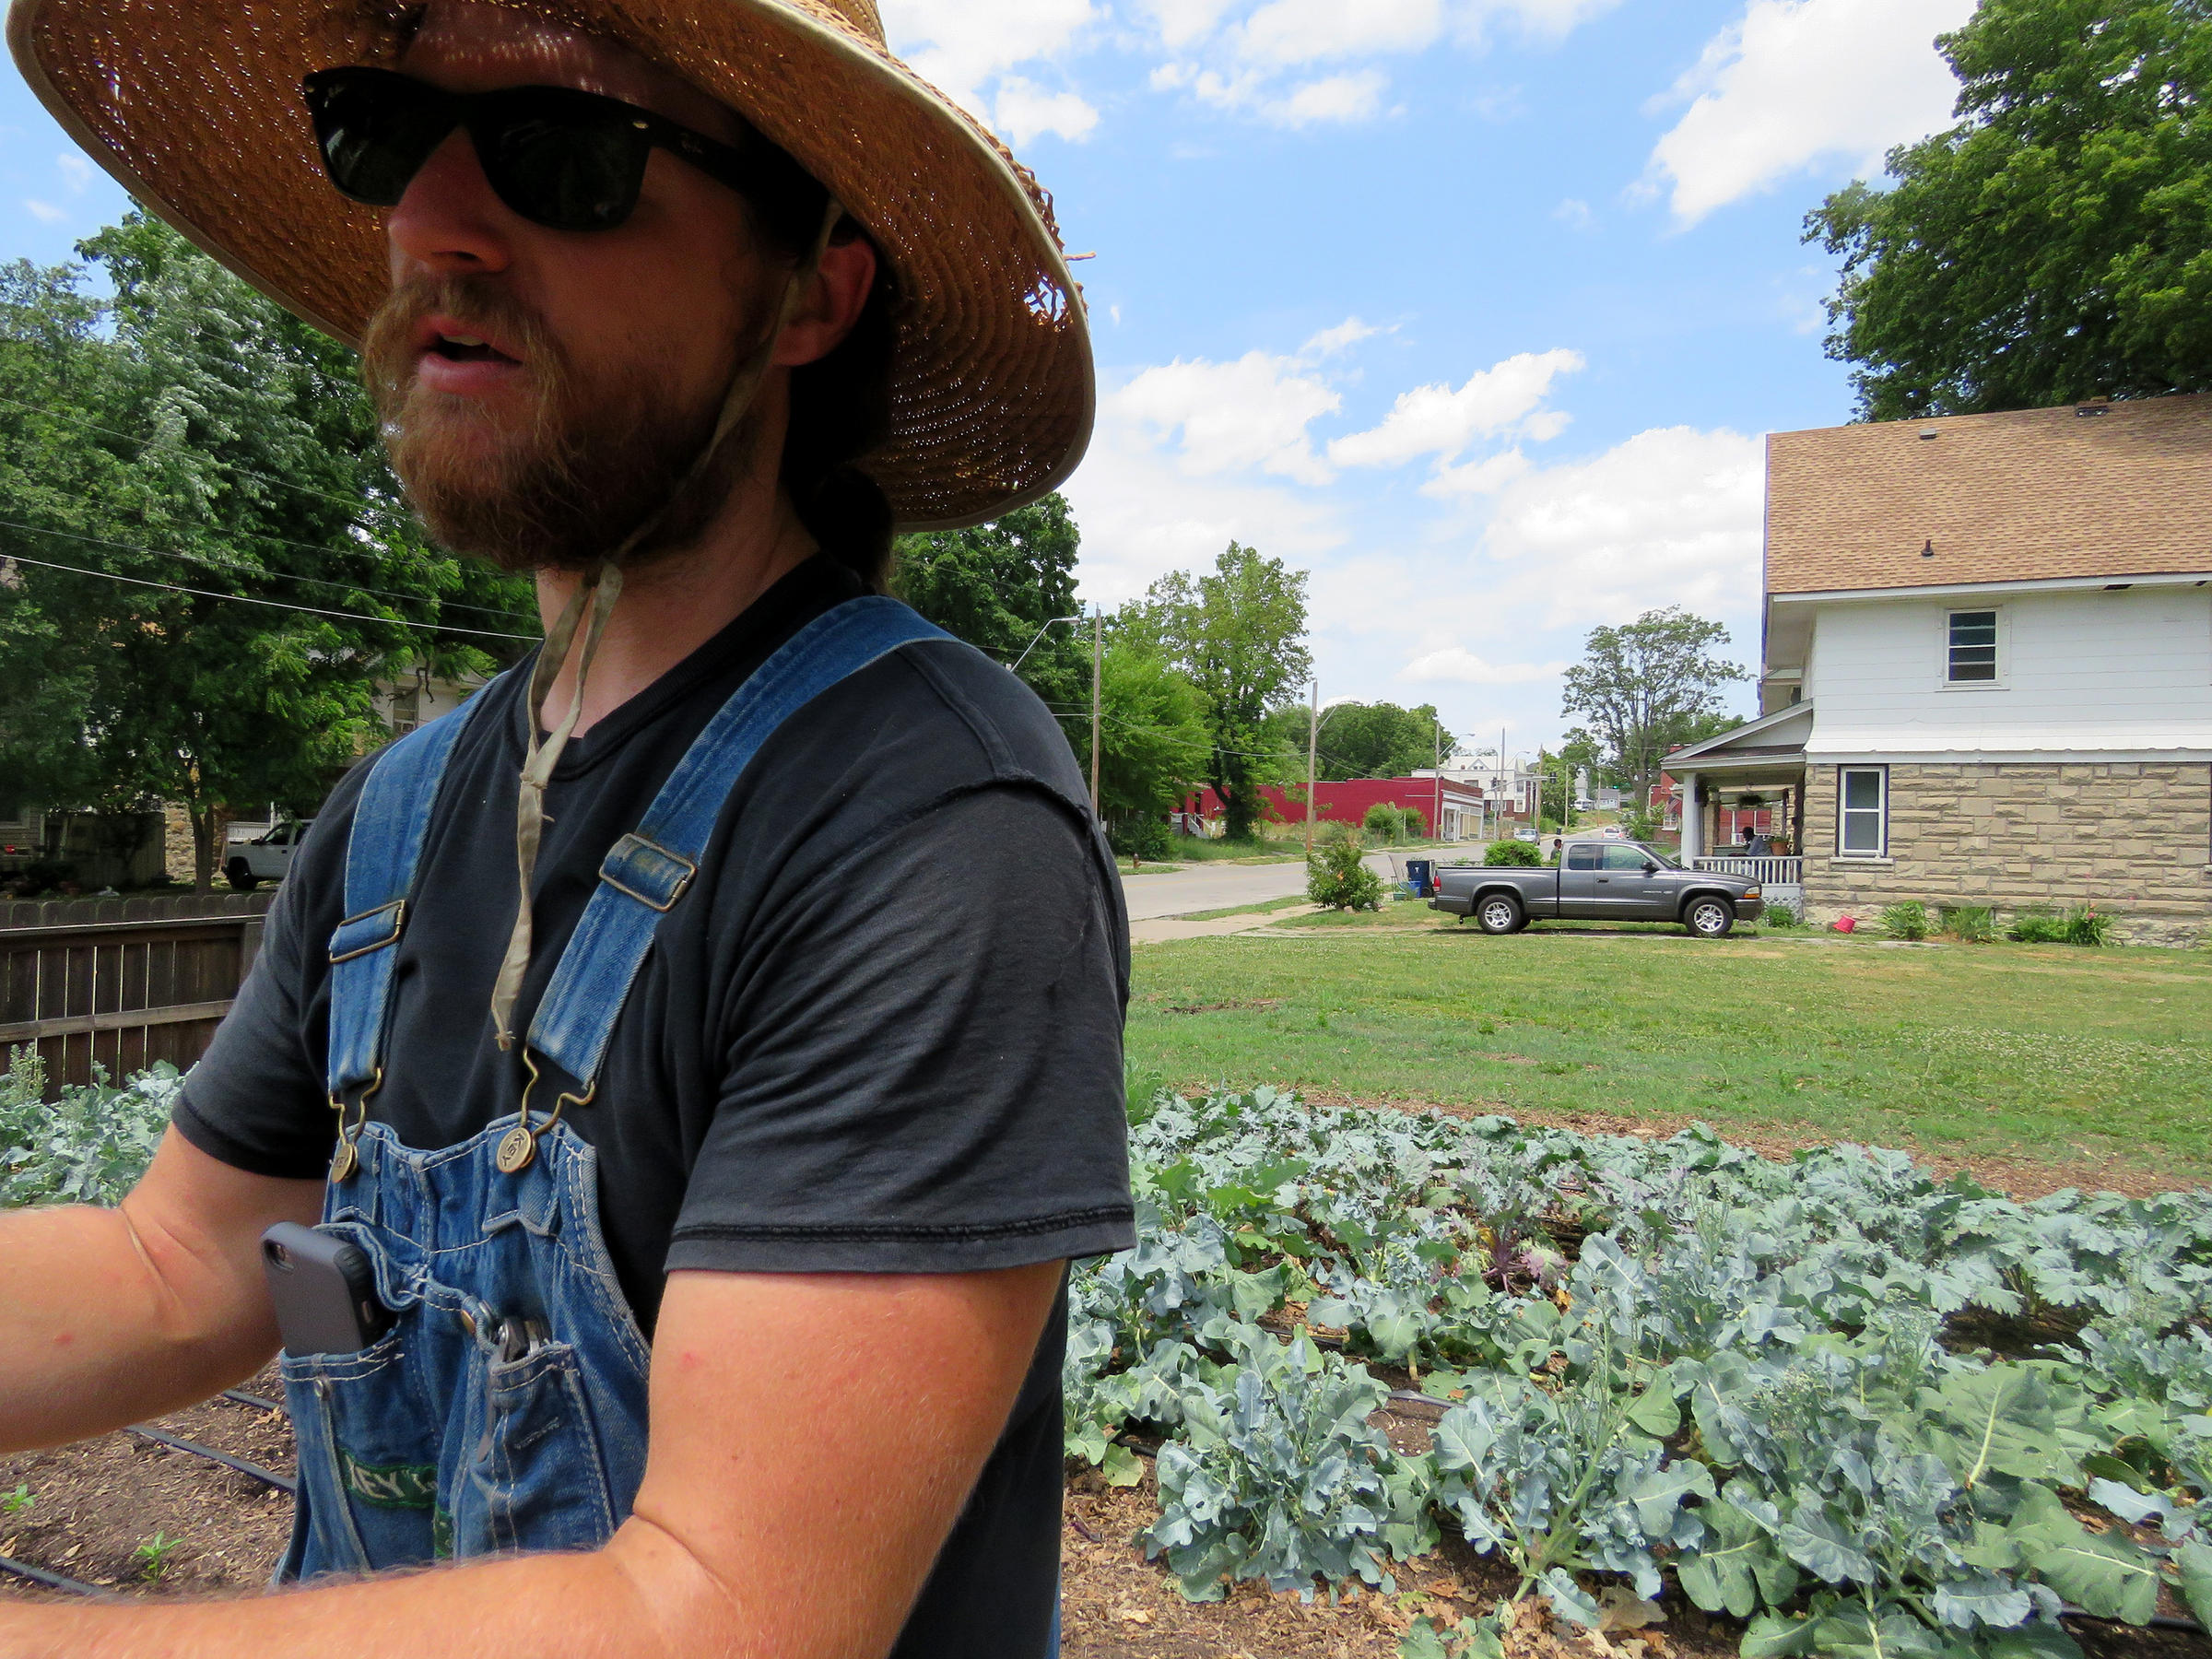 So What Exactly Is The Benefit Of Urban Agriculture?